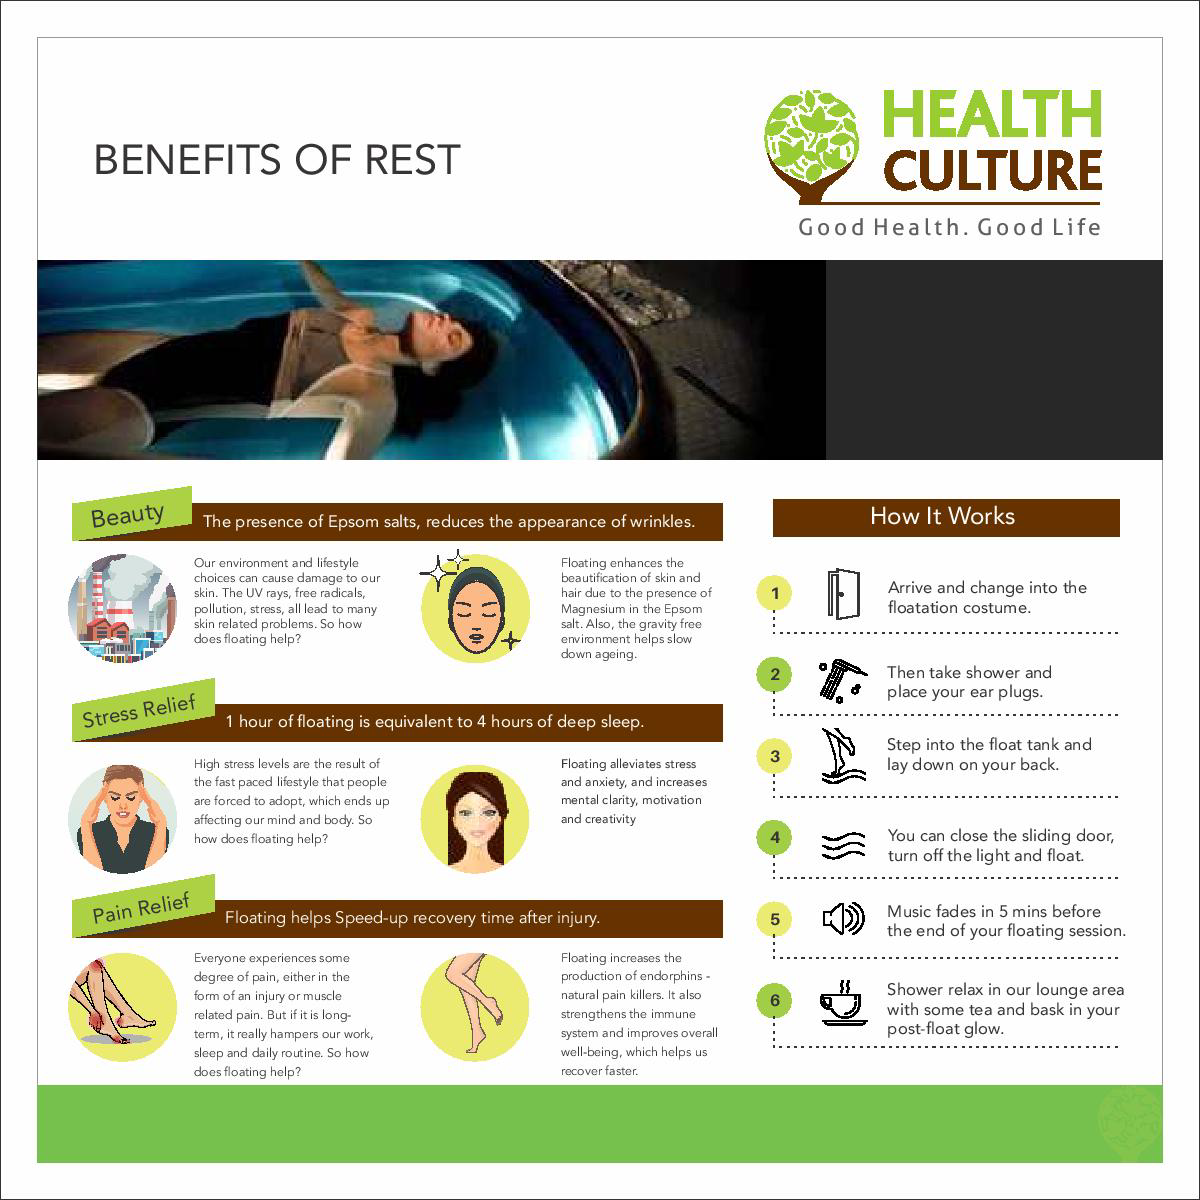 Benefits of REST Article - Health Culture